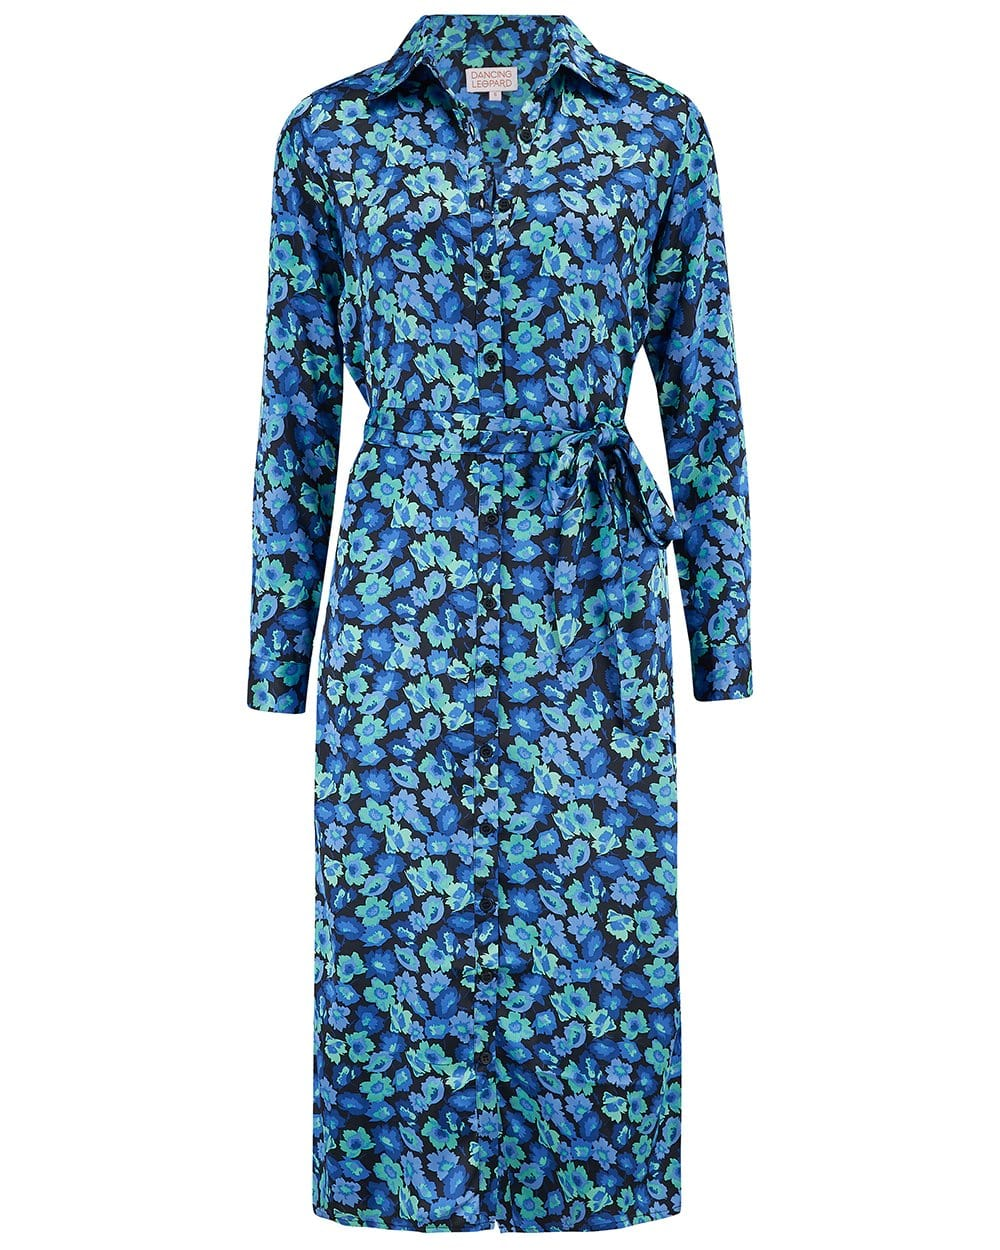 Dancing Leopard Hadiba Midi Shirt Dress In Blue Floral Print on white background